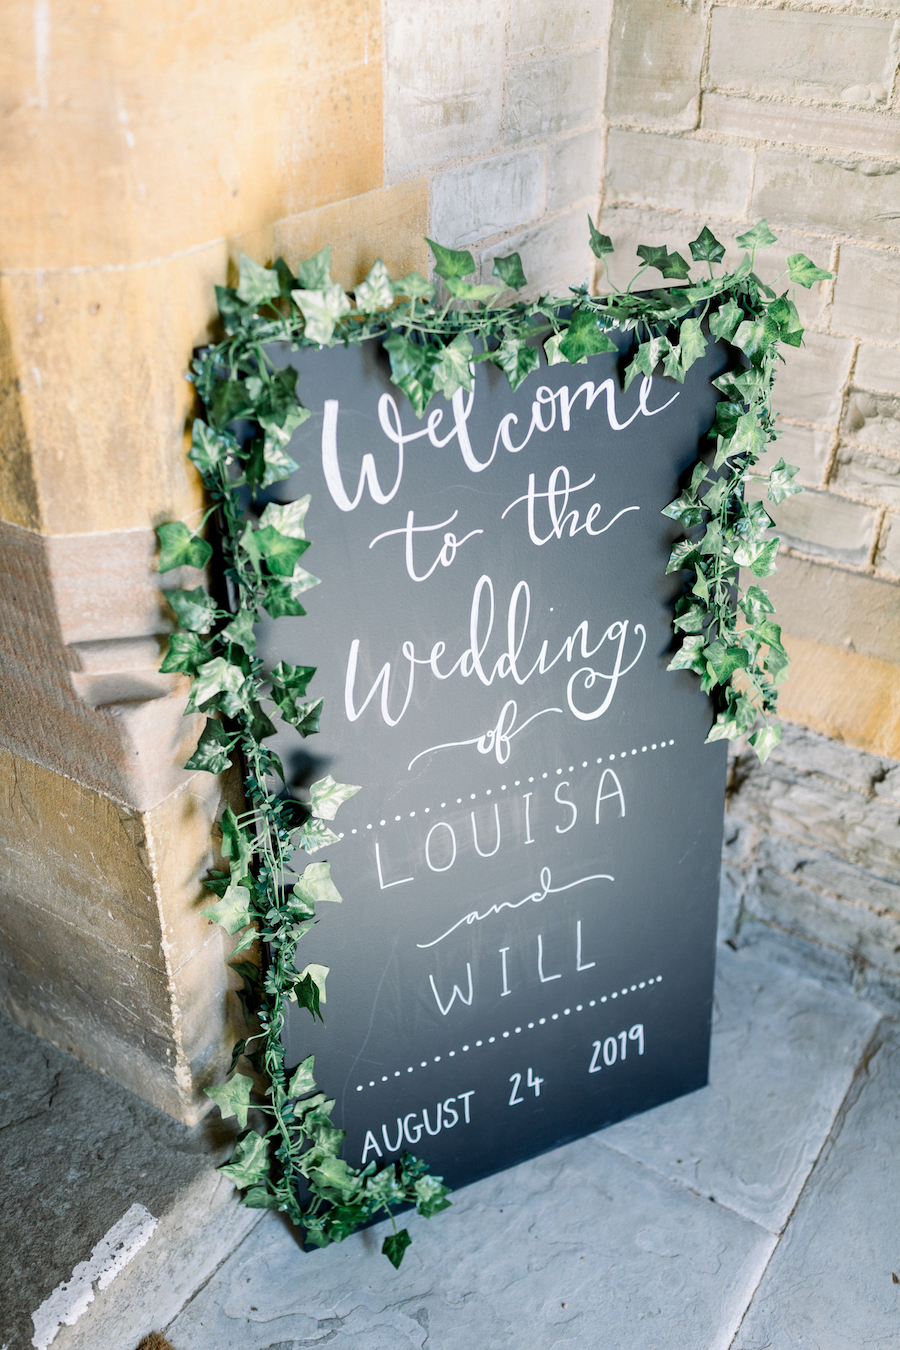 Louisa & Will's light and airy sunflower wedding at Lapstone Barn, with Hannah K Photography (6)